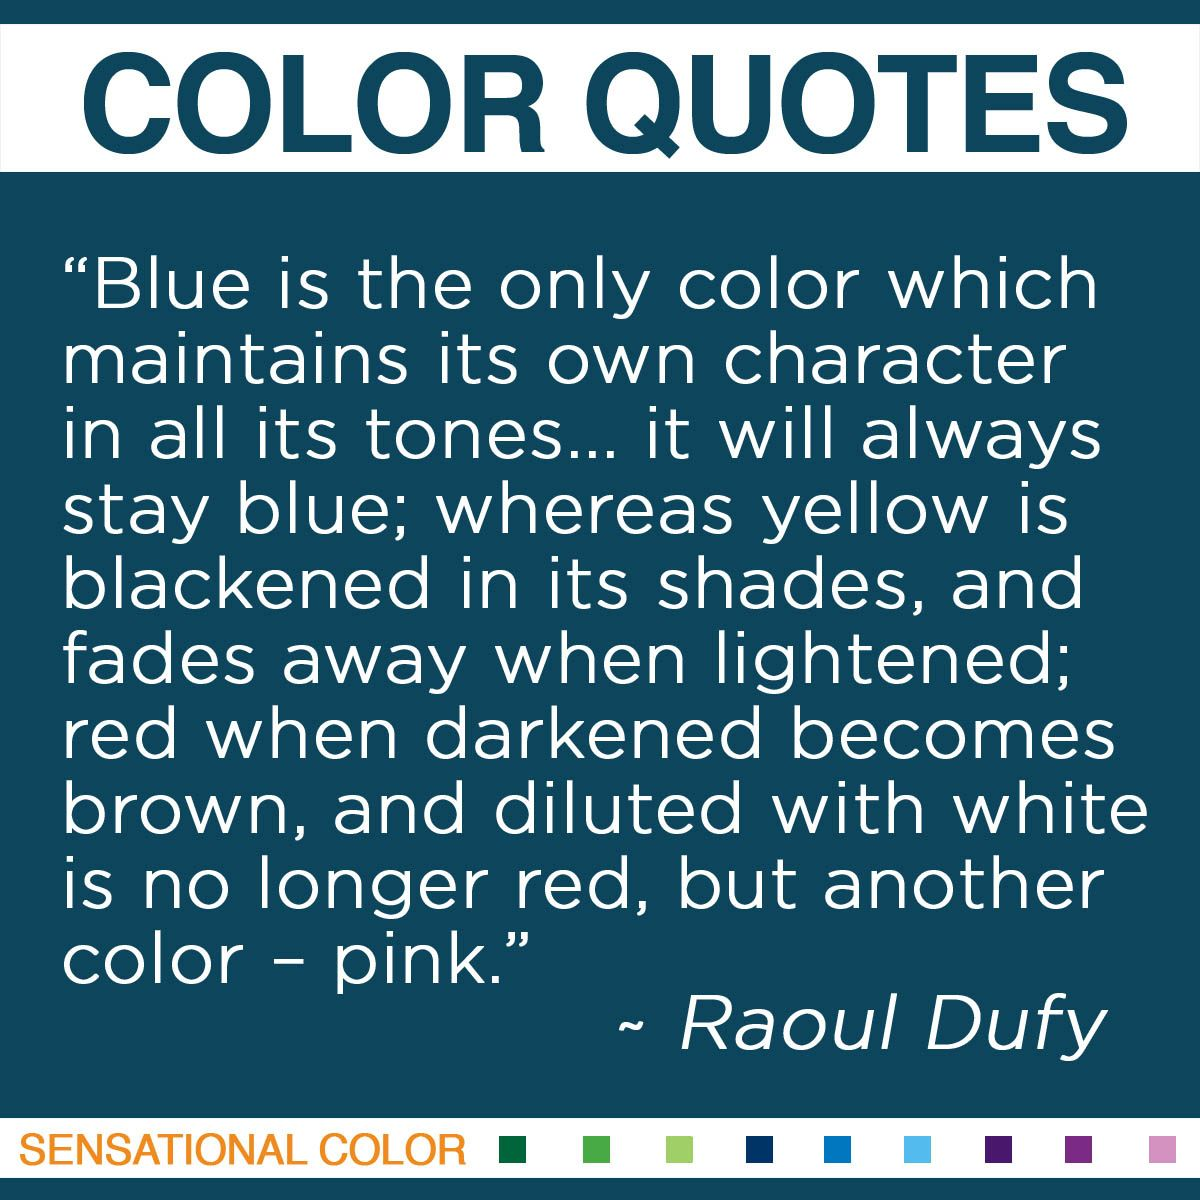 """Blue is the only color which maintains its own character in all its tones… it will always stay blue; whereas yellow is blackened in its shades, and fades away when lightened; red when darkened becomes brown, and diluted with white is no longer red, but another color – pink."" - Raoul Dufy"